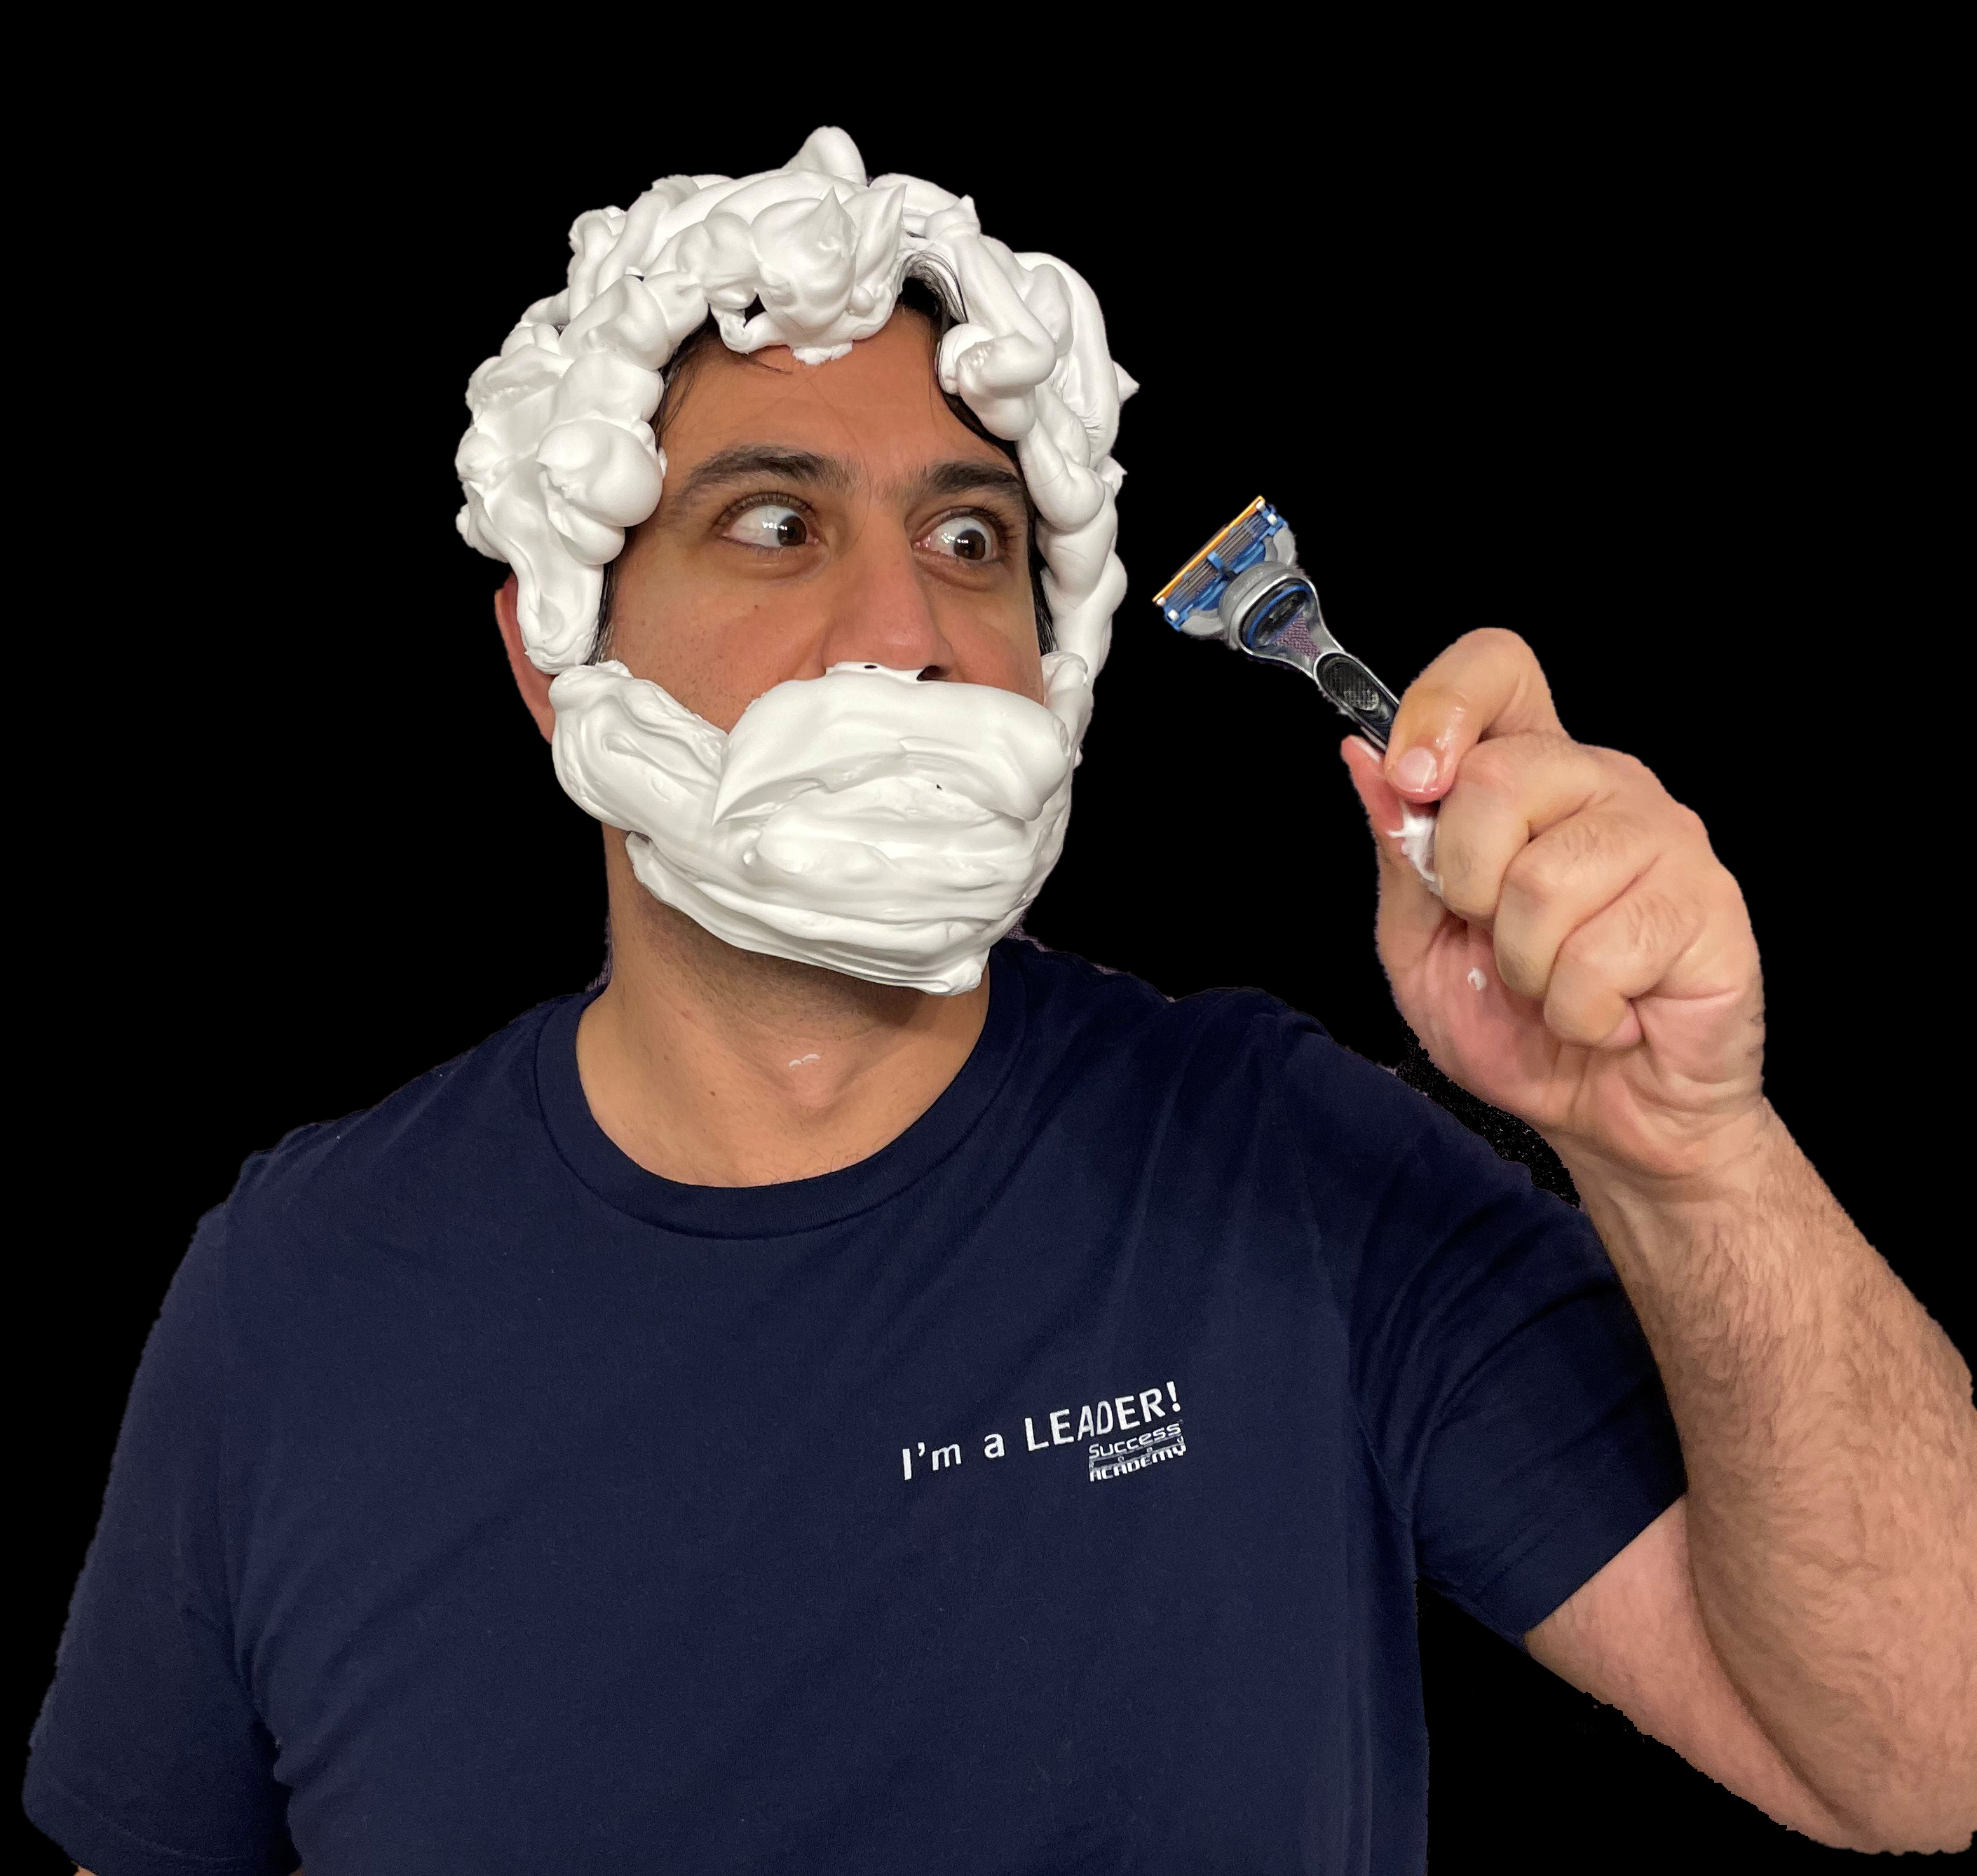 Online Marketers Taking a Close Shave for a Great Cause